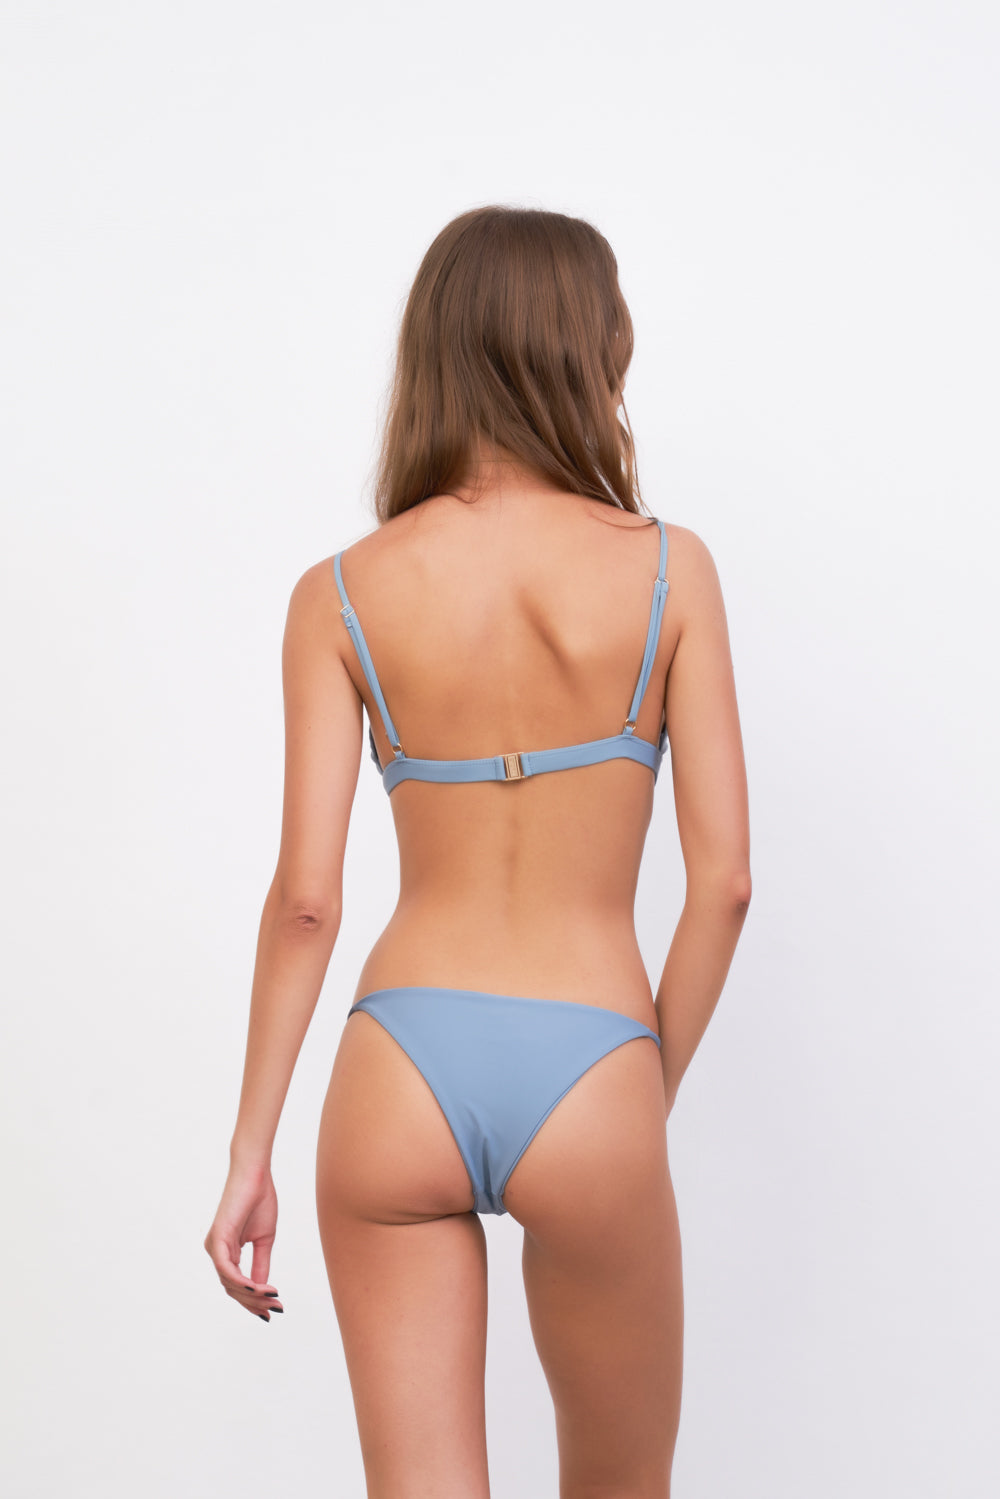 Storm Swimwear - Capri - Tube Single Side Strap Bikini Bottom in Sky Blue